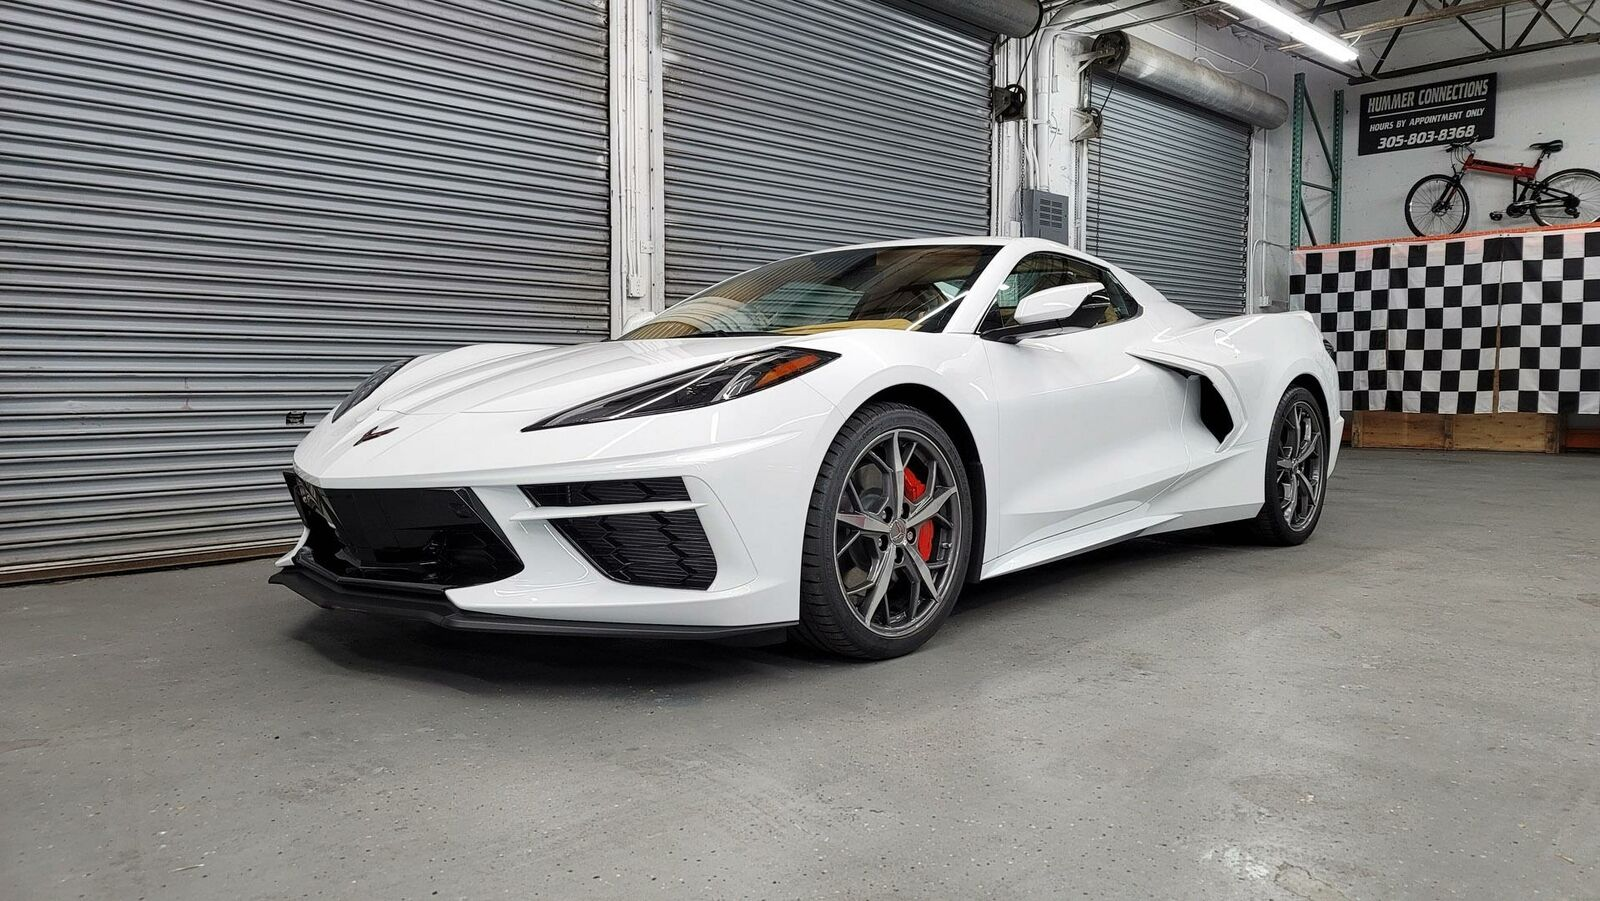 2021 White Chevrolet Corvette  3LT | C7 Corvette Photo 2